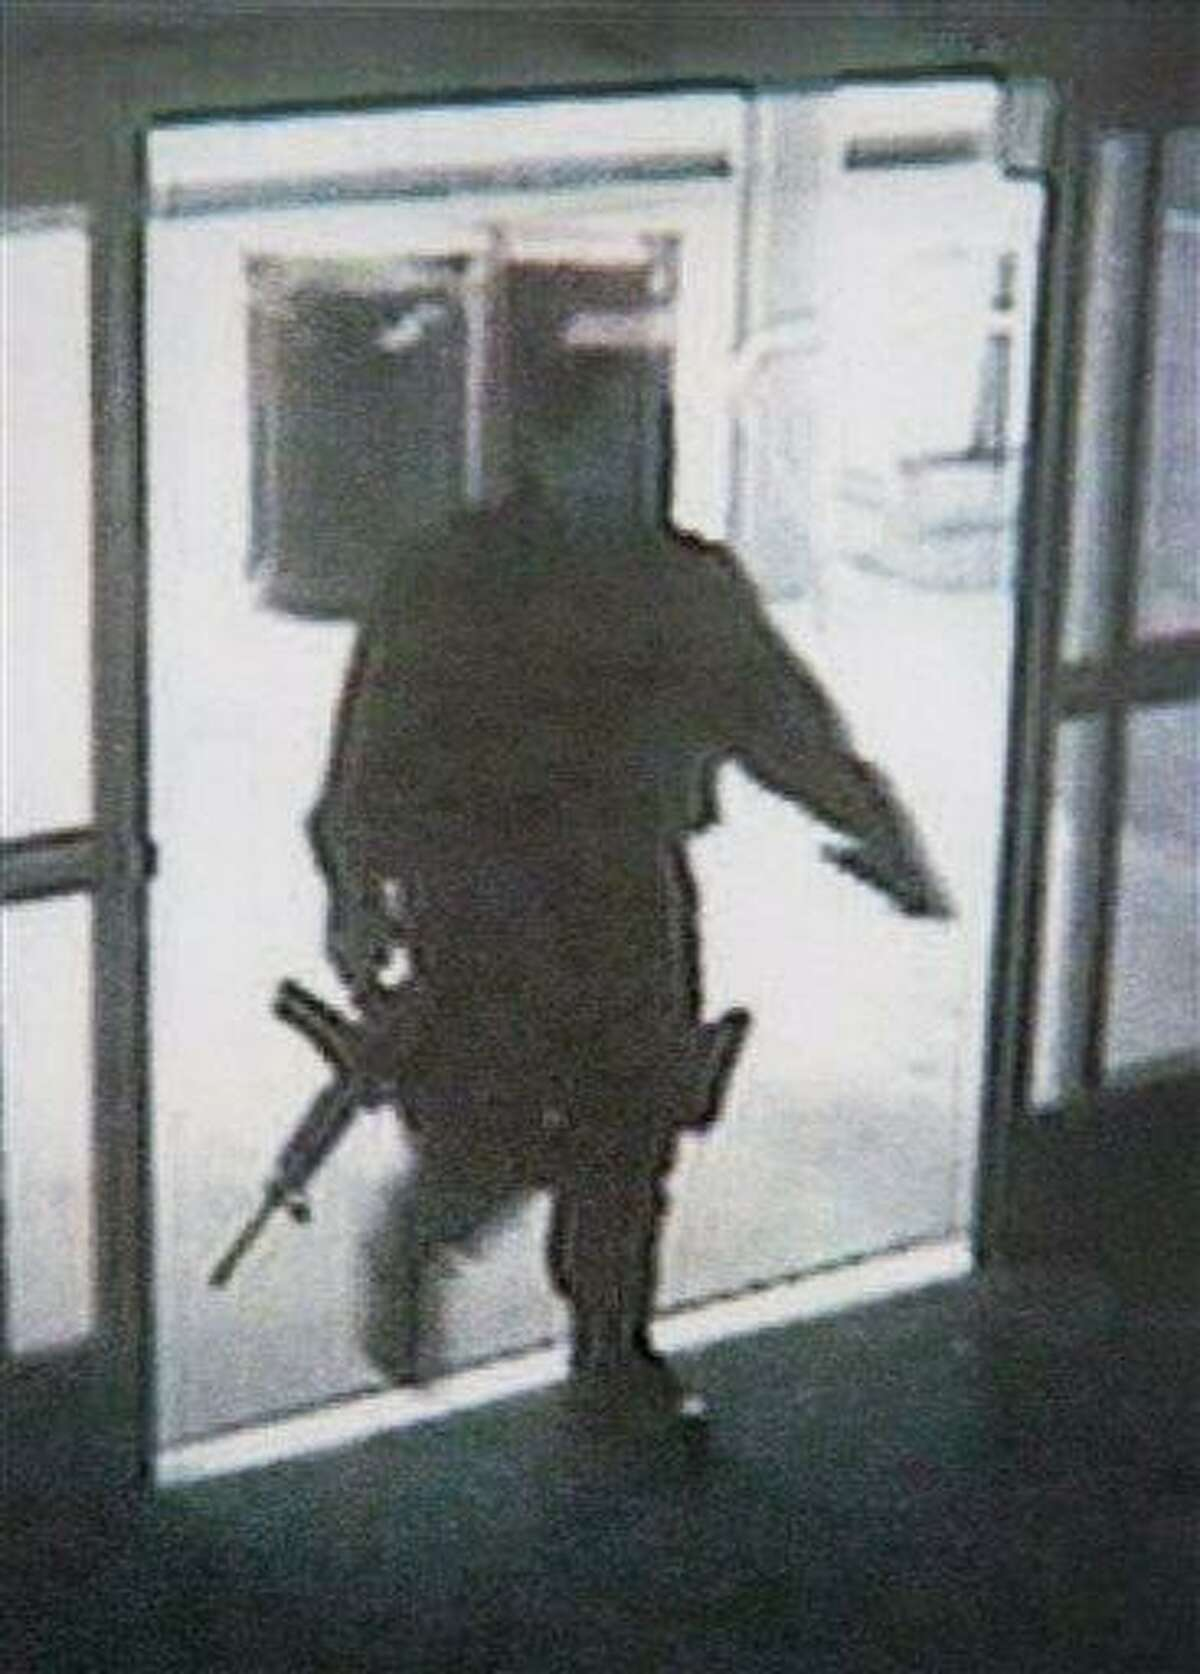 This photo provided by the Santa Monica Police Department during a news conference Saturday, June 8, 2013, shows a frame grab from a surveillance camera revealing the suspect entering Santa Monica College Friday, in Santa Monica, Calif. The Police chief said Saturday that the gunman who went on a chaotic rampage killing four people before being fatally shot by police at the college planned the attack and was capable of firing 1,300 rounds of ammunition. (AP Photo/Santa Monica Police Department)